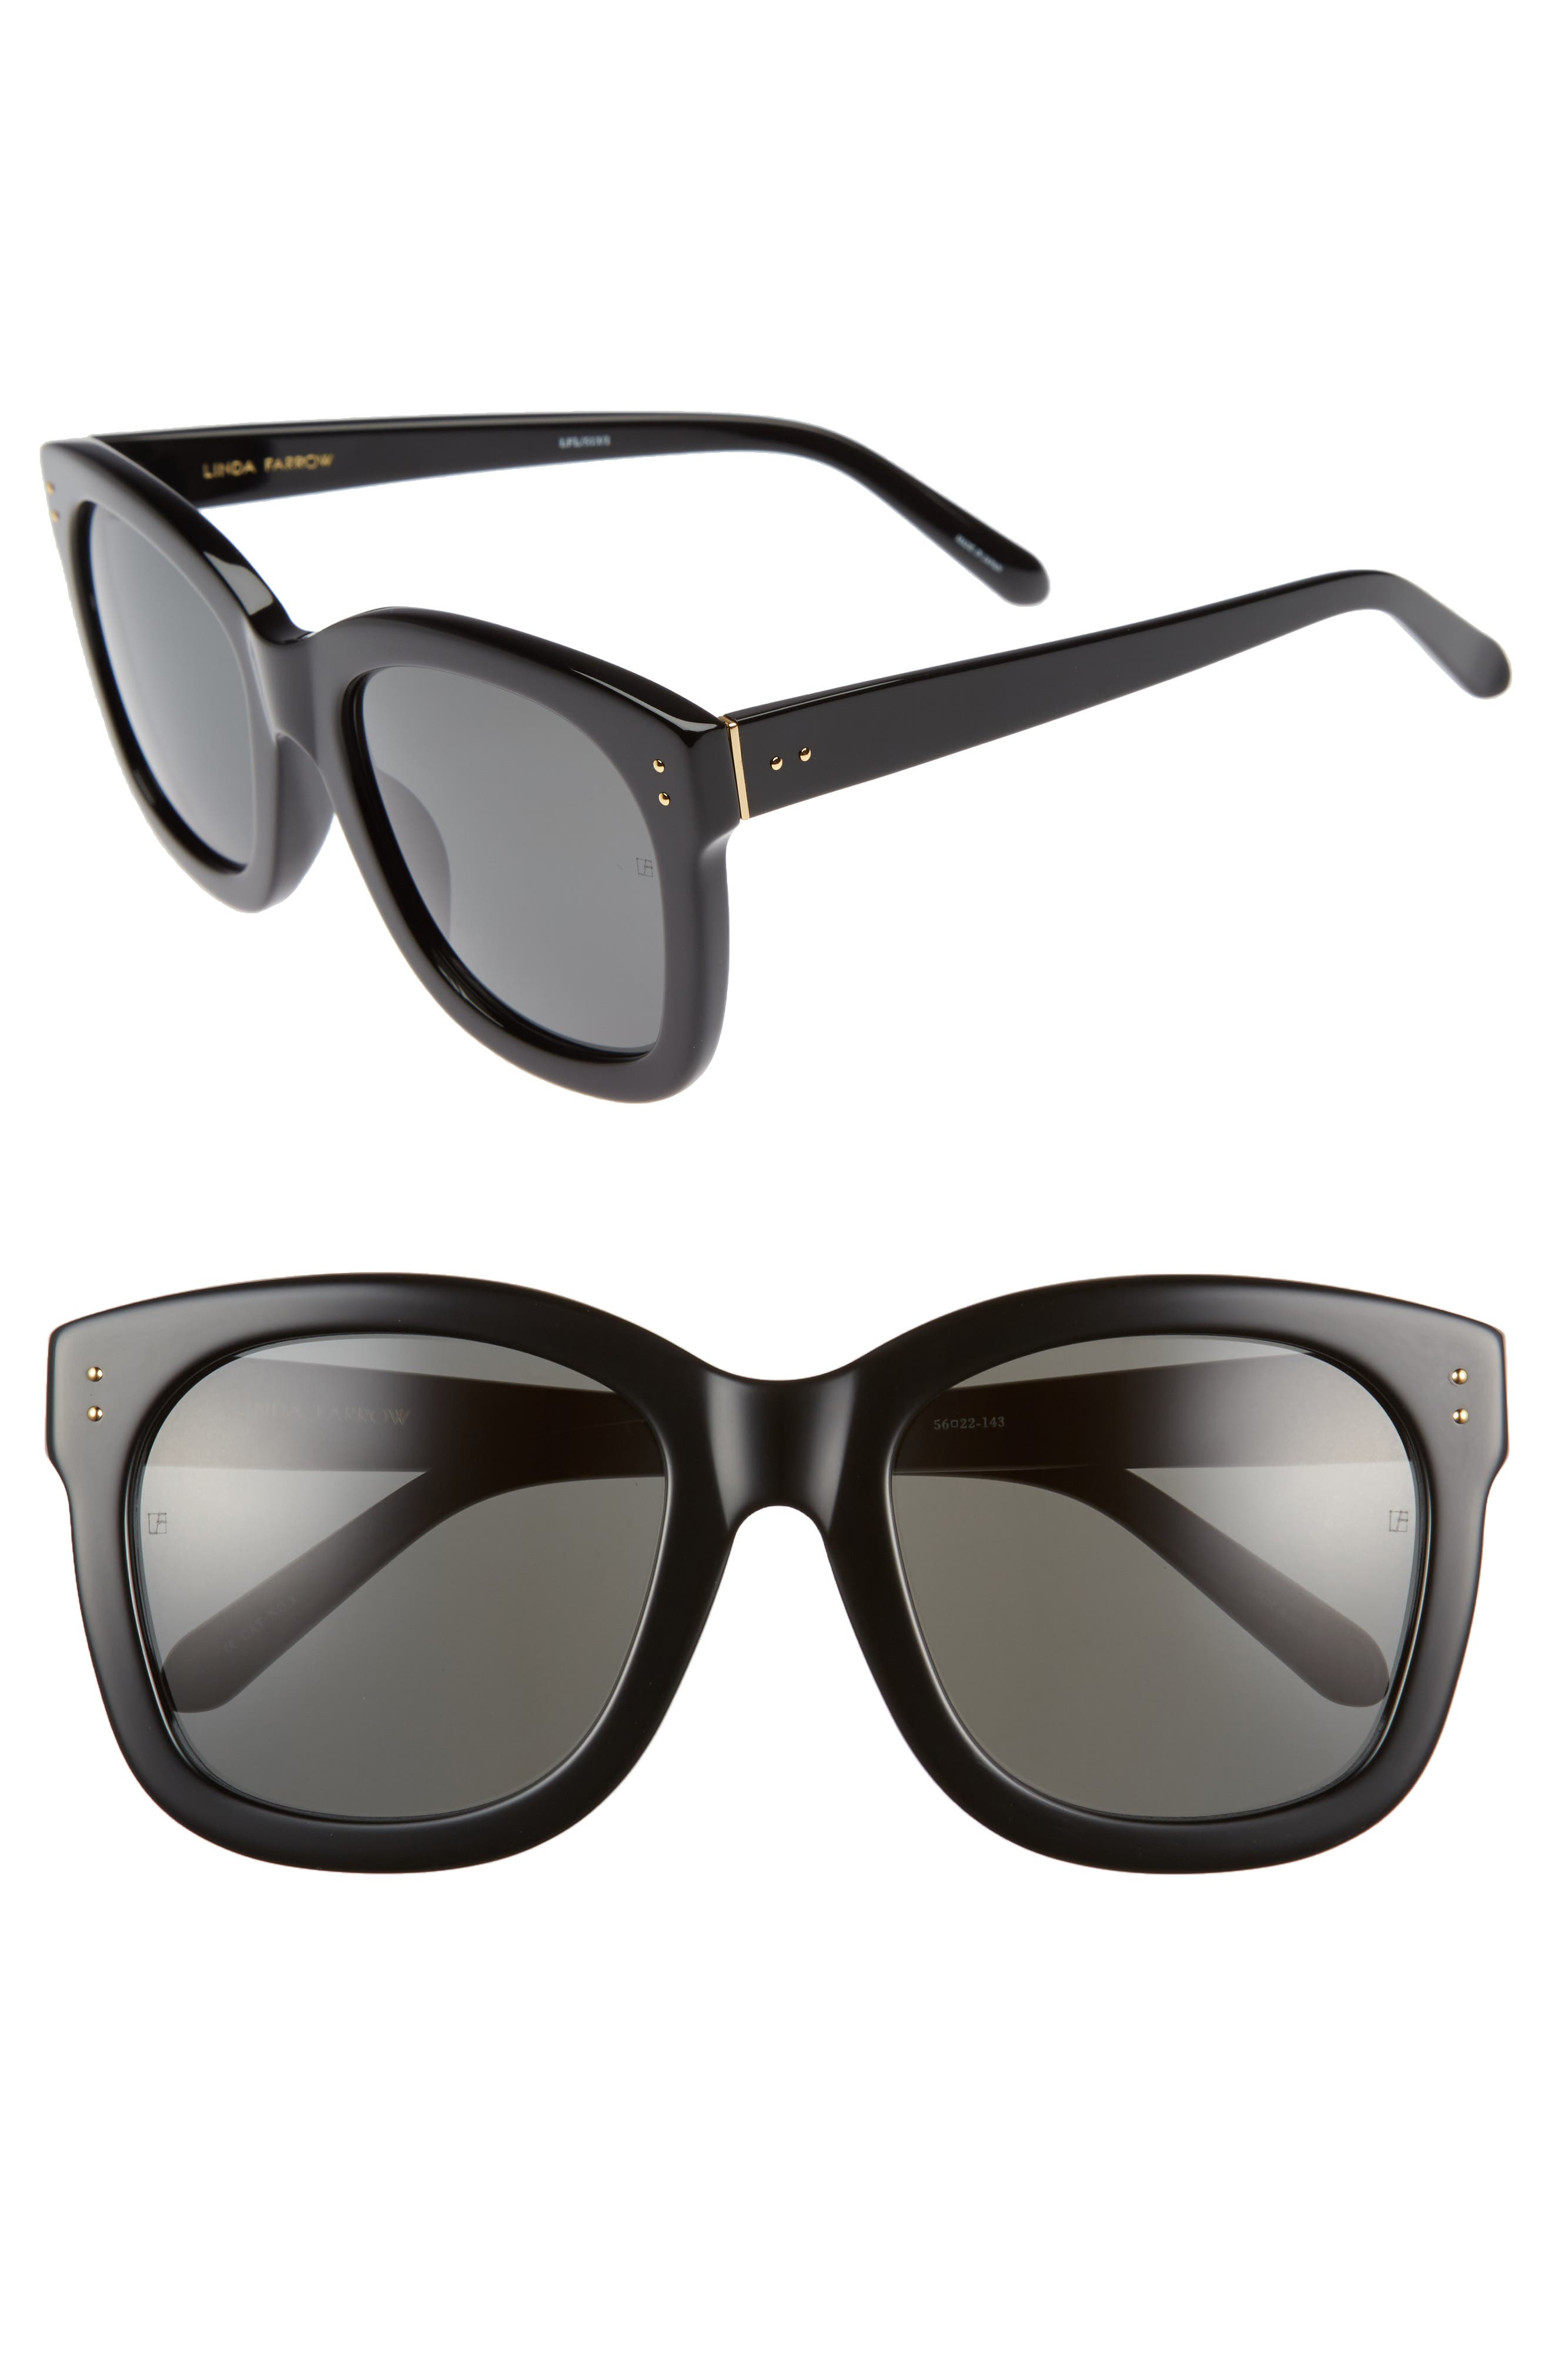 56mm Square Sunglasses,                         Main,                         color, Black/ Yellow Gold/ Grey